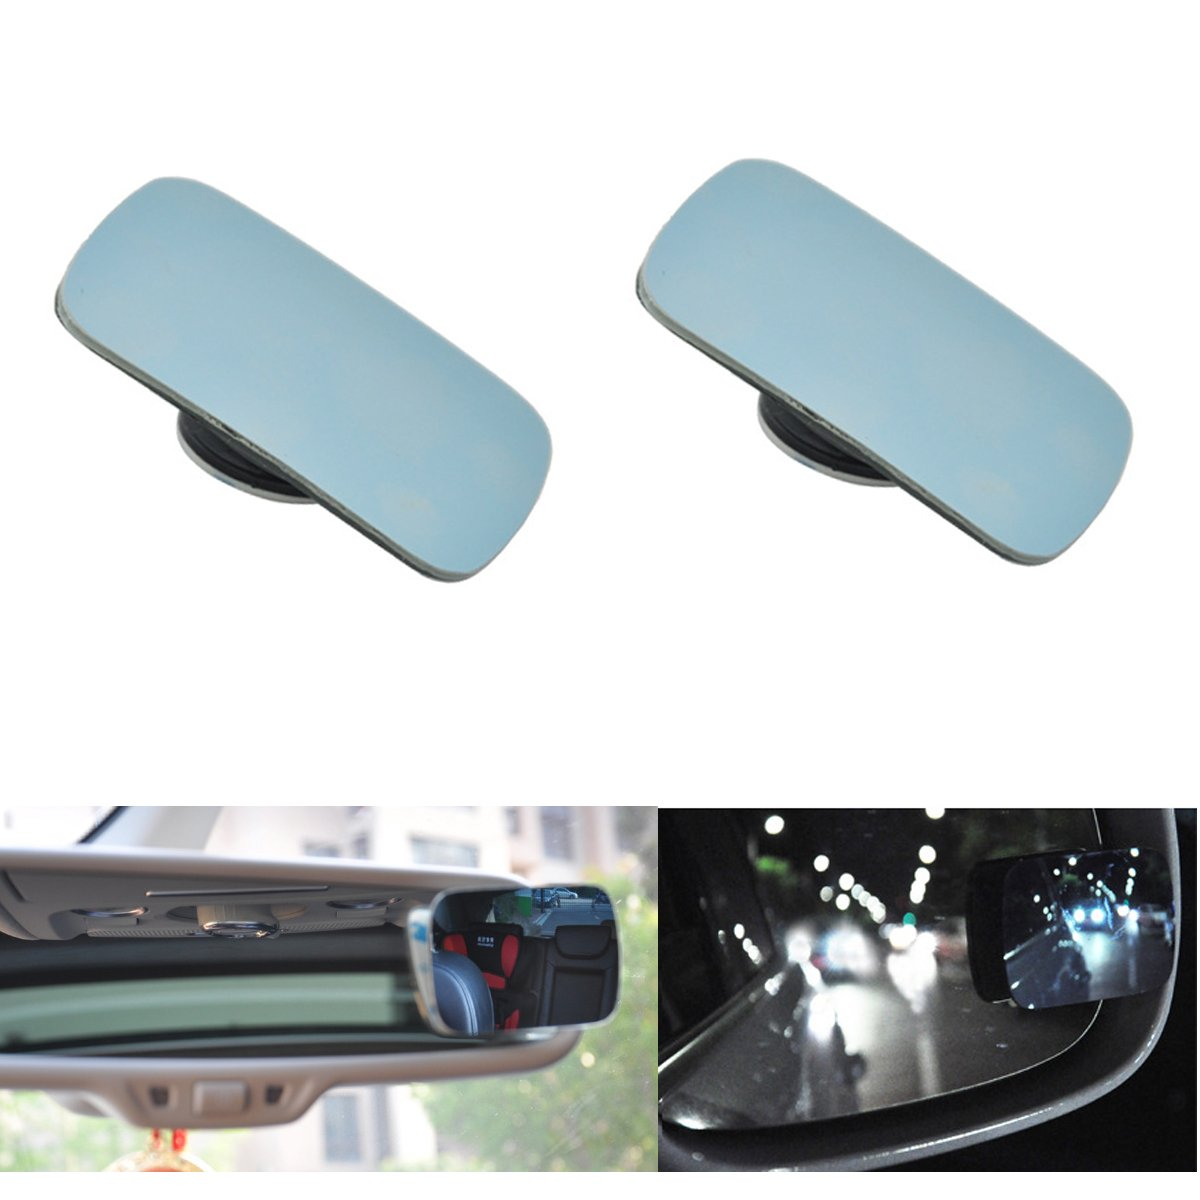 PME Blind Spot Mirror 360° Rotate - Safety Convex Side Mirrors, Exterior Rear View Mirror 2' Universal Wide Angle Blind spot Truck Mirror - (1 Pair, Plain Mirror) Exterior Rear View Mirror 2 Universal Wide Angle Blind spot Truck Mirror - (1 Pair